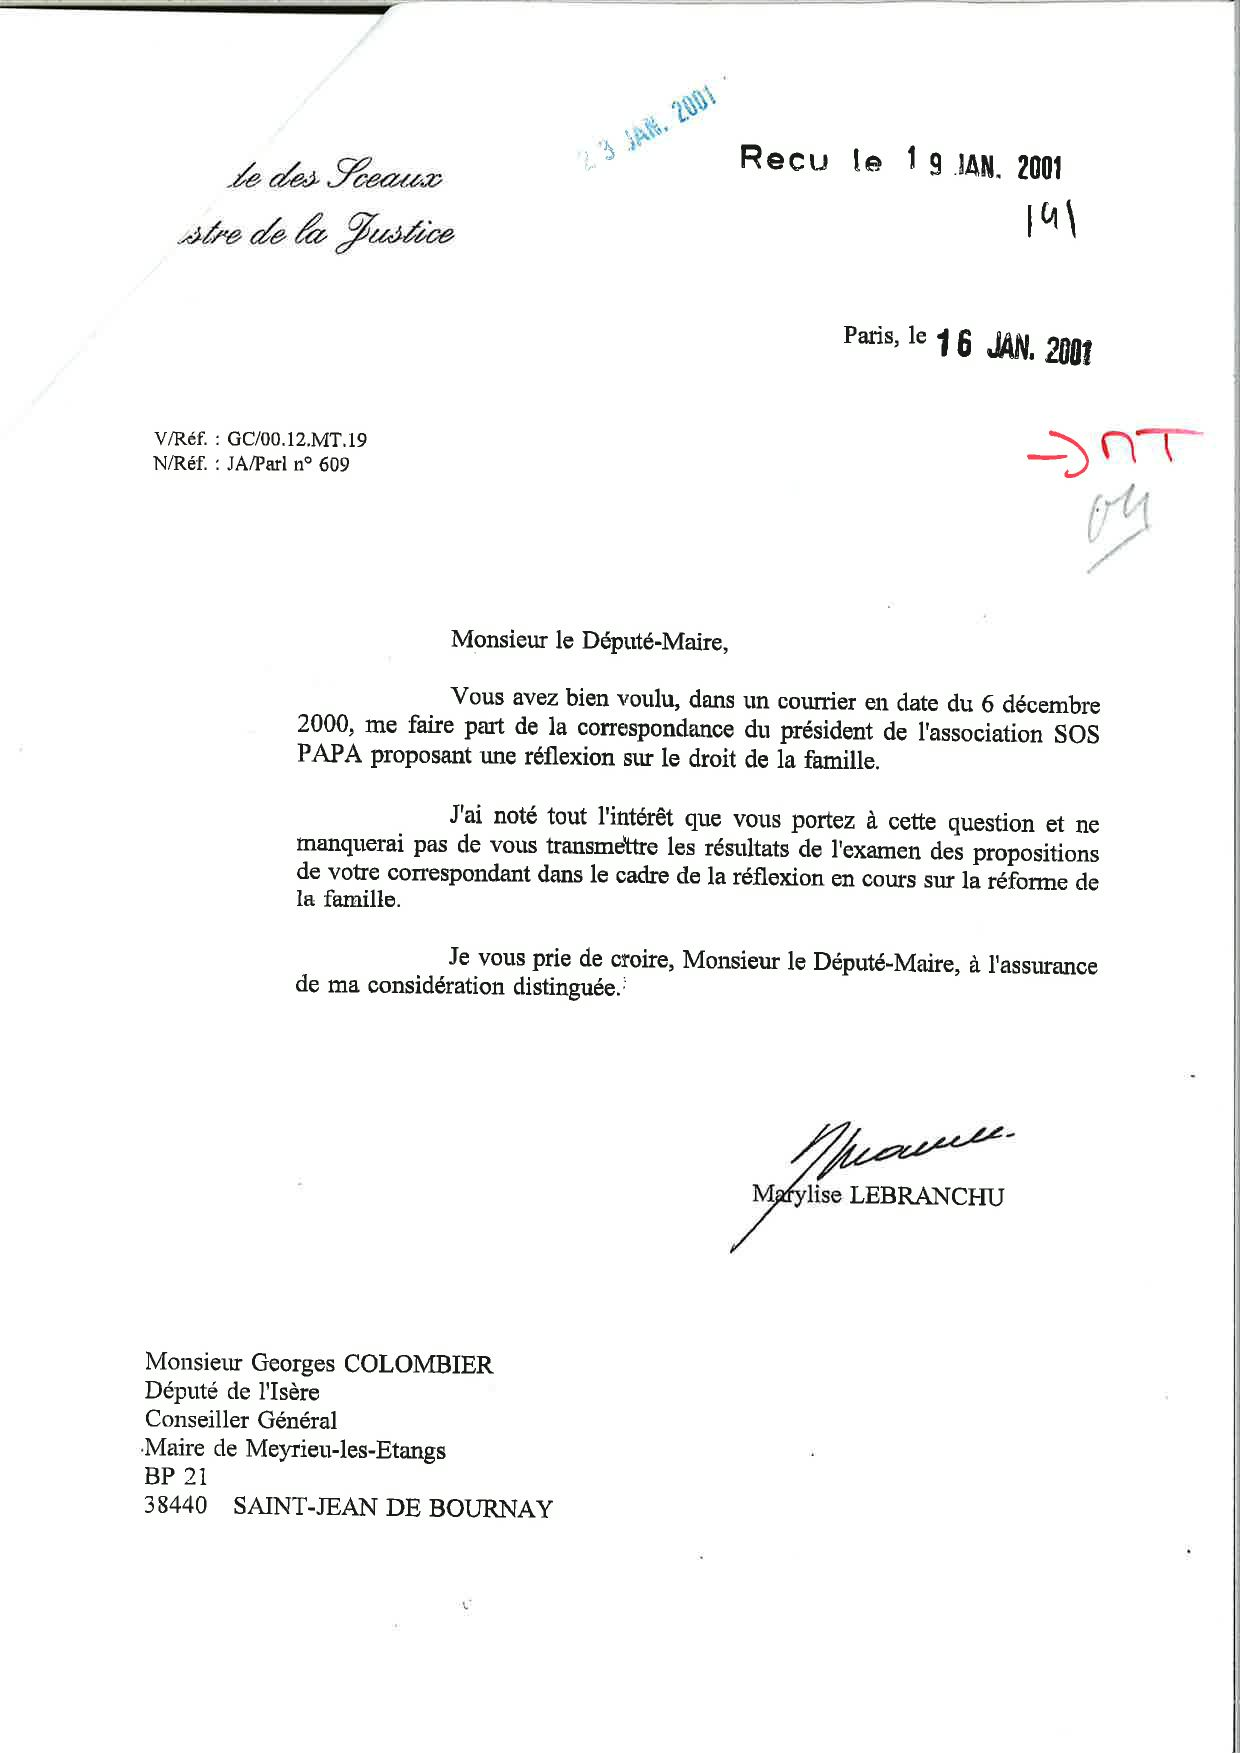 Courrier de Marylise Lebranchu à Georges Colombier, 16/01/2001